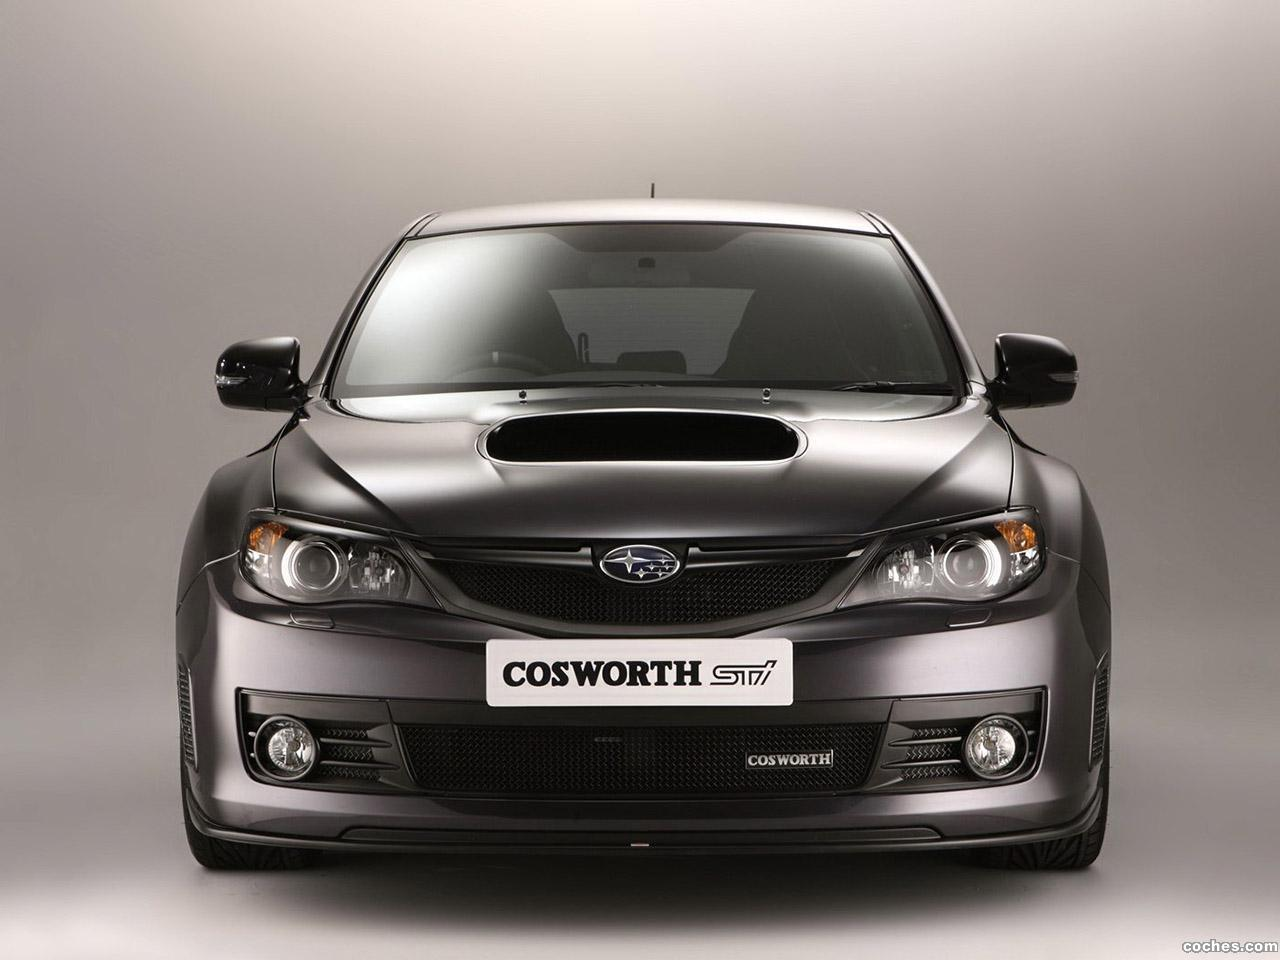 Foto 2 de Subaru Impreza Cosworth STi CS400 UK 2010